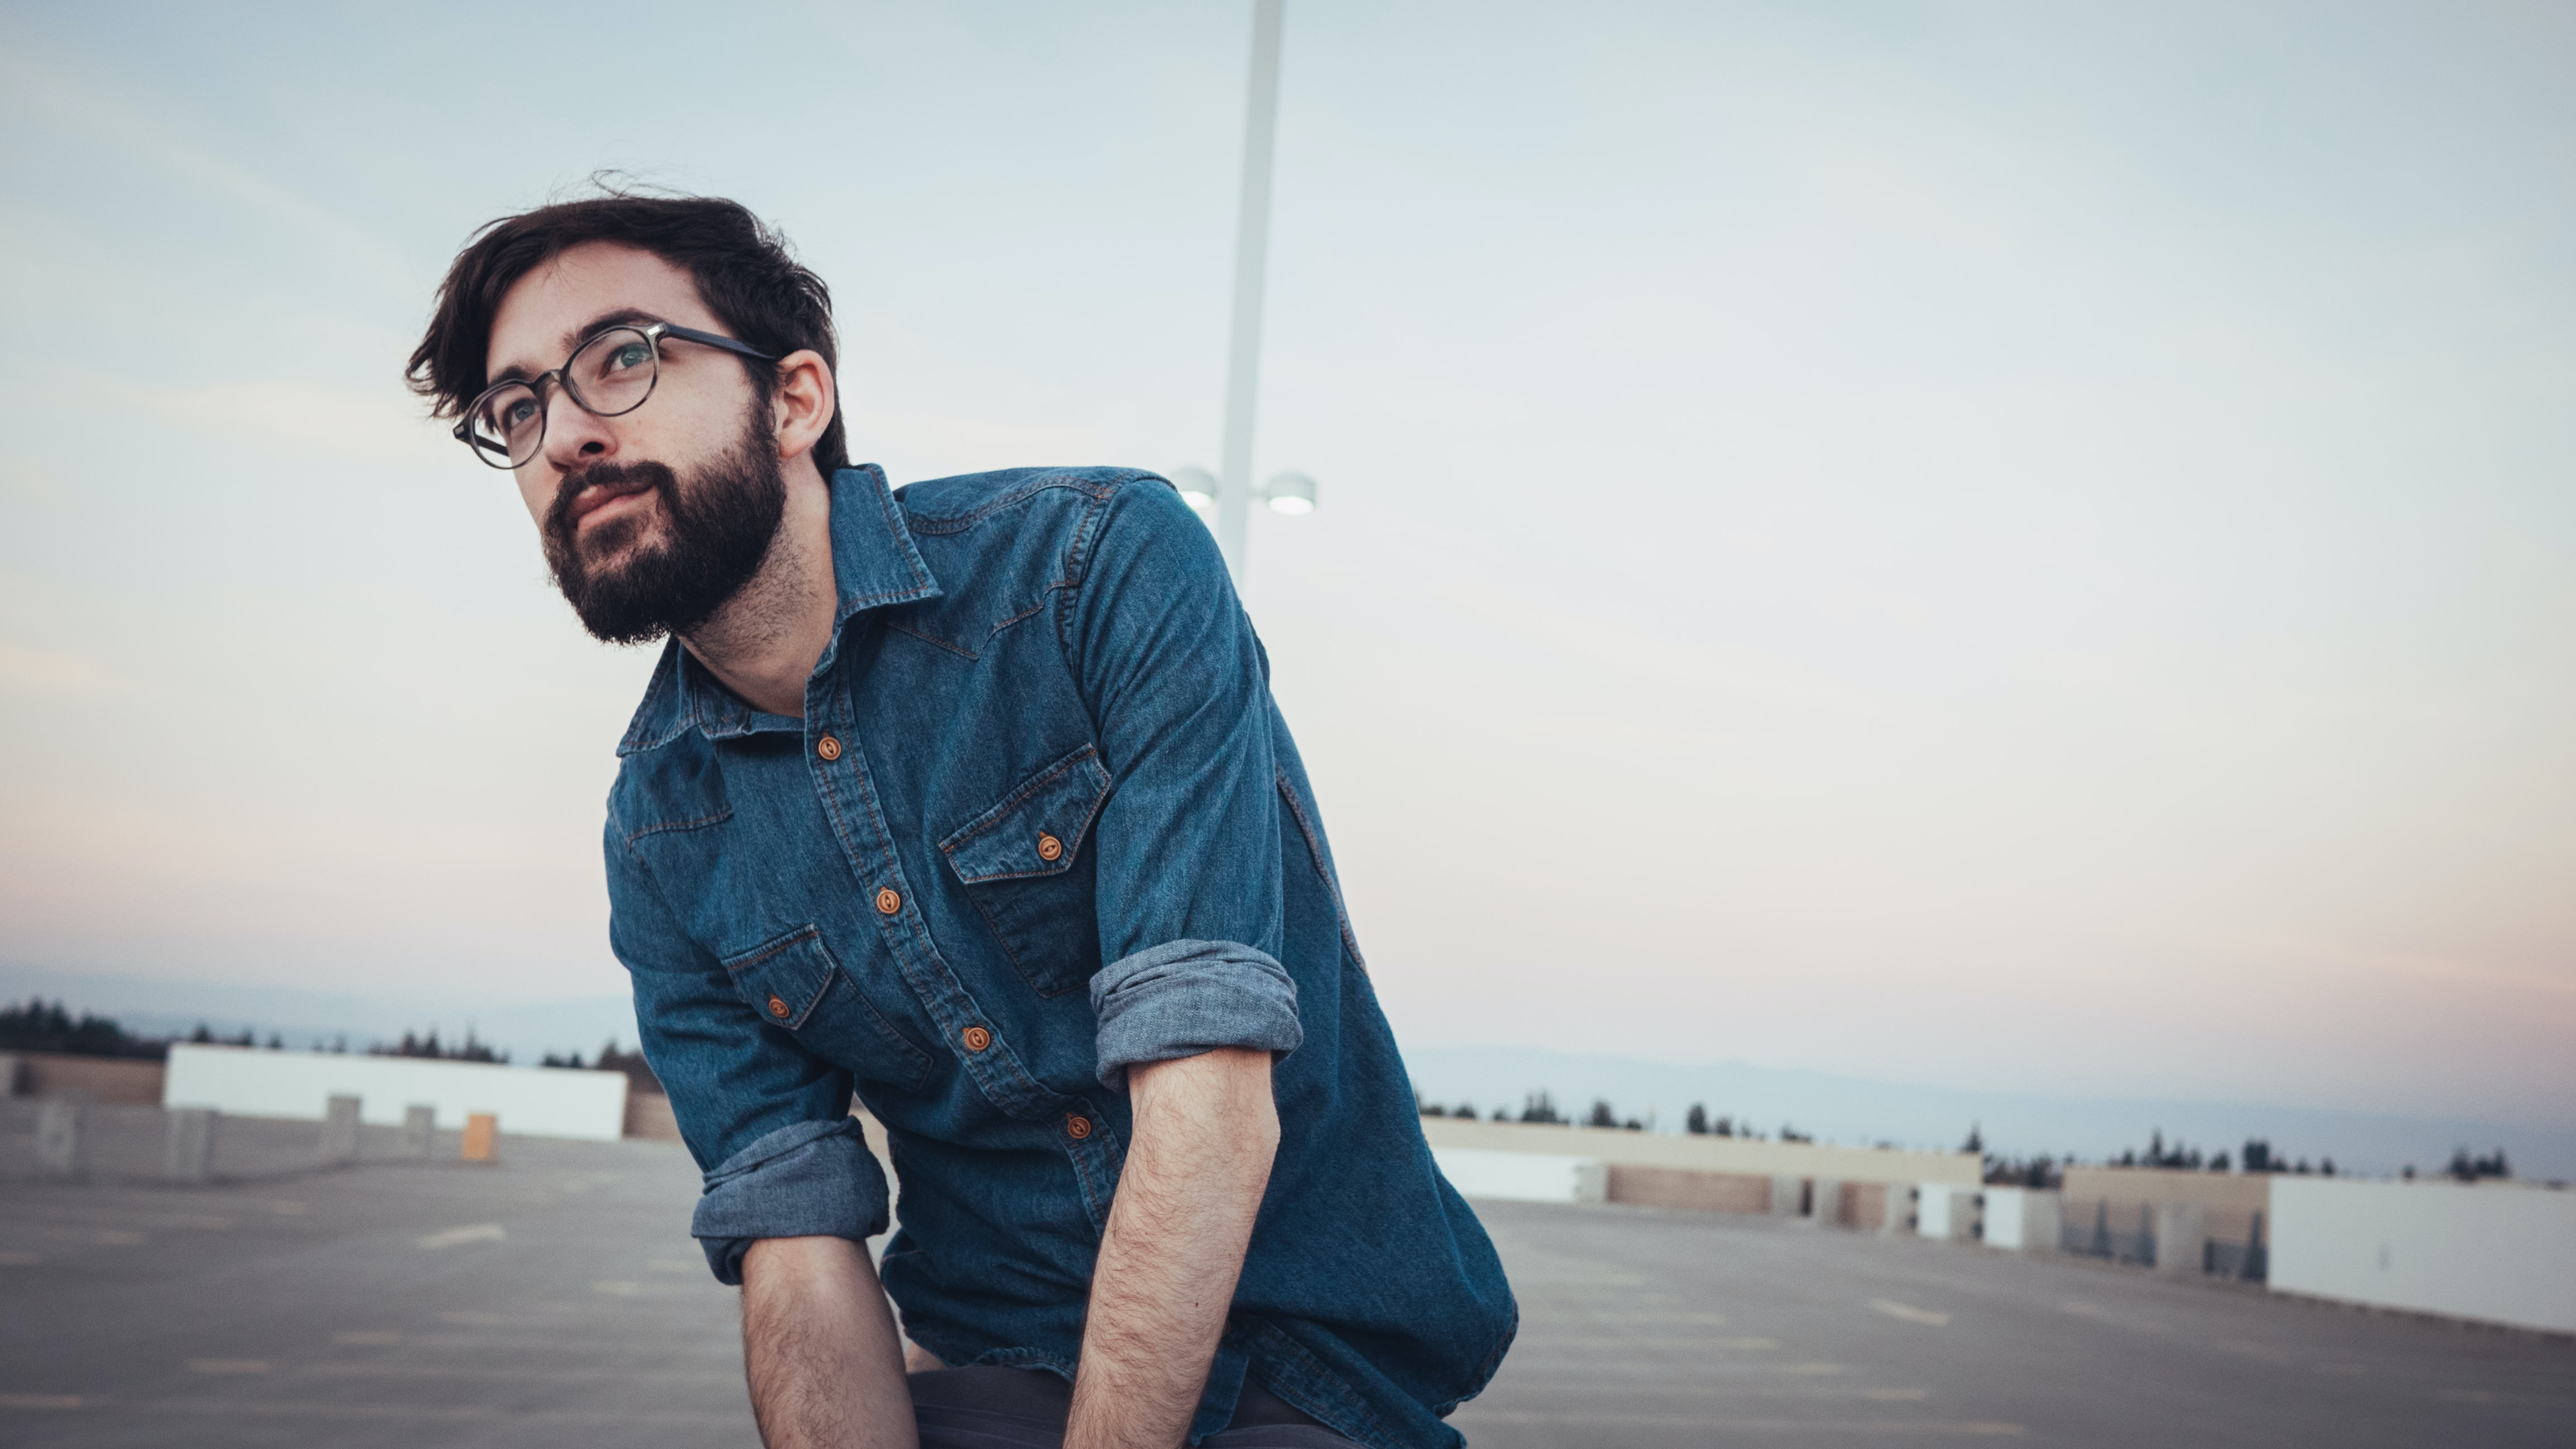 man wearing denim sport shirt and sunglasses on concrete flooring